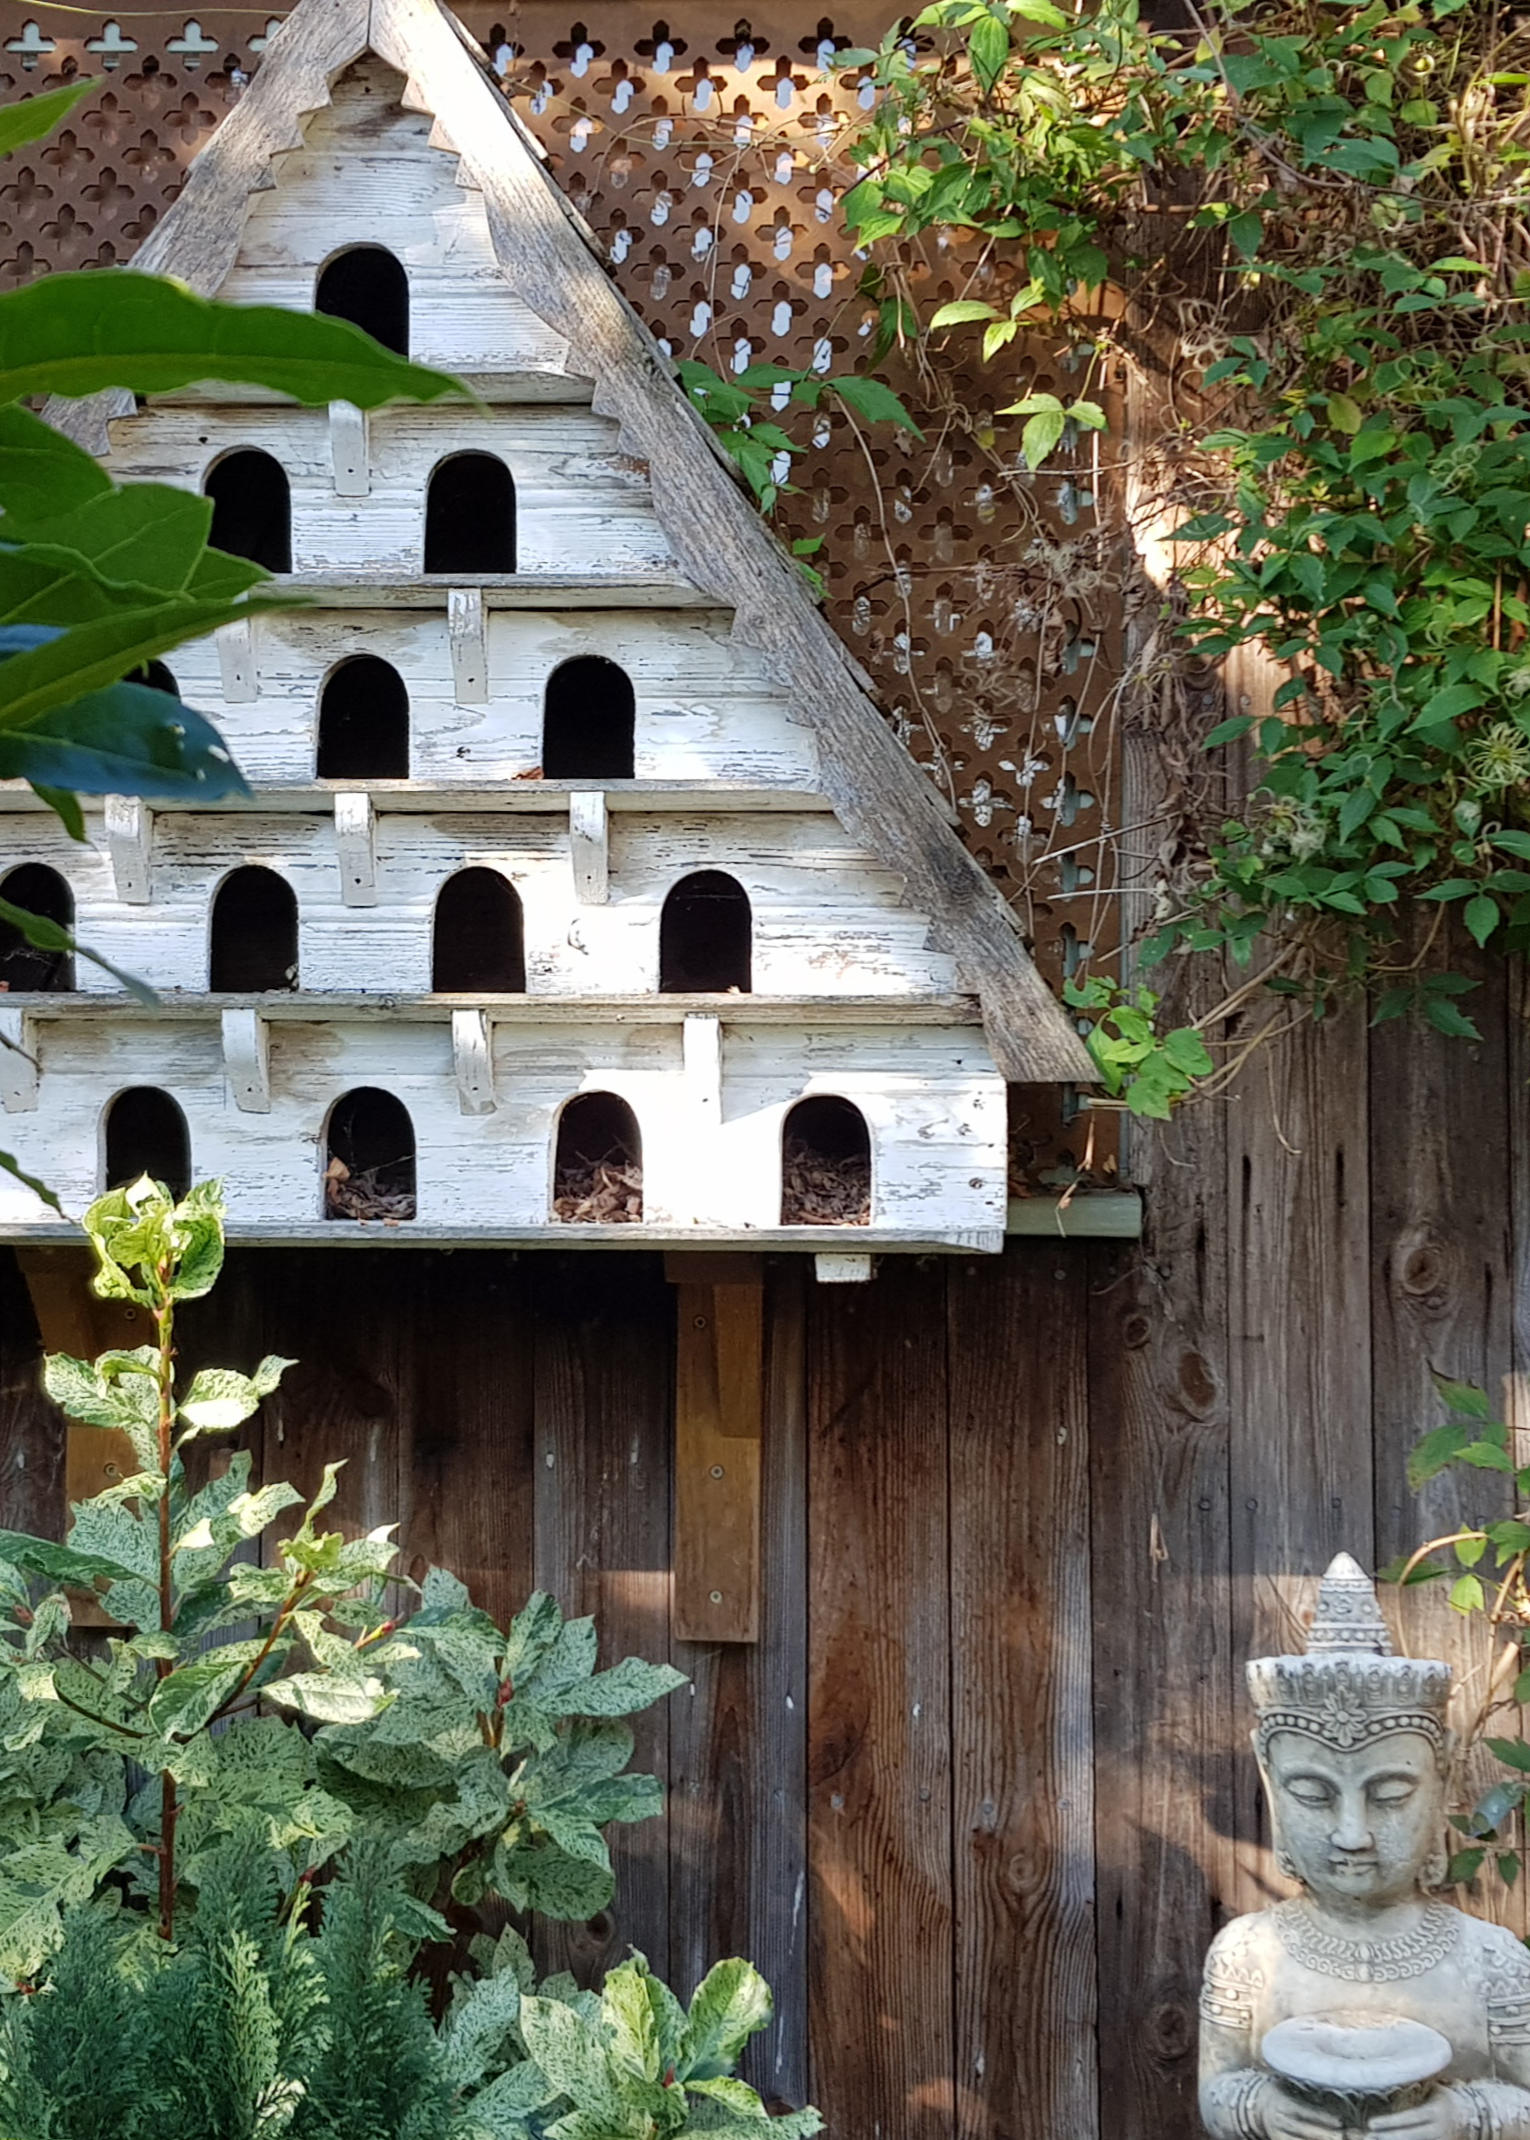 Triangular, white painted bird house with five floors.